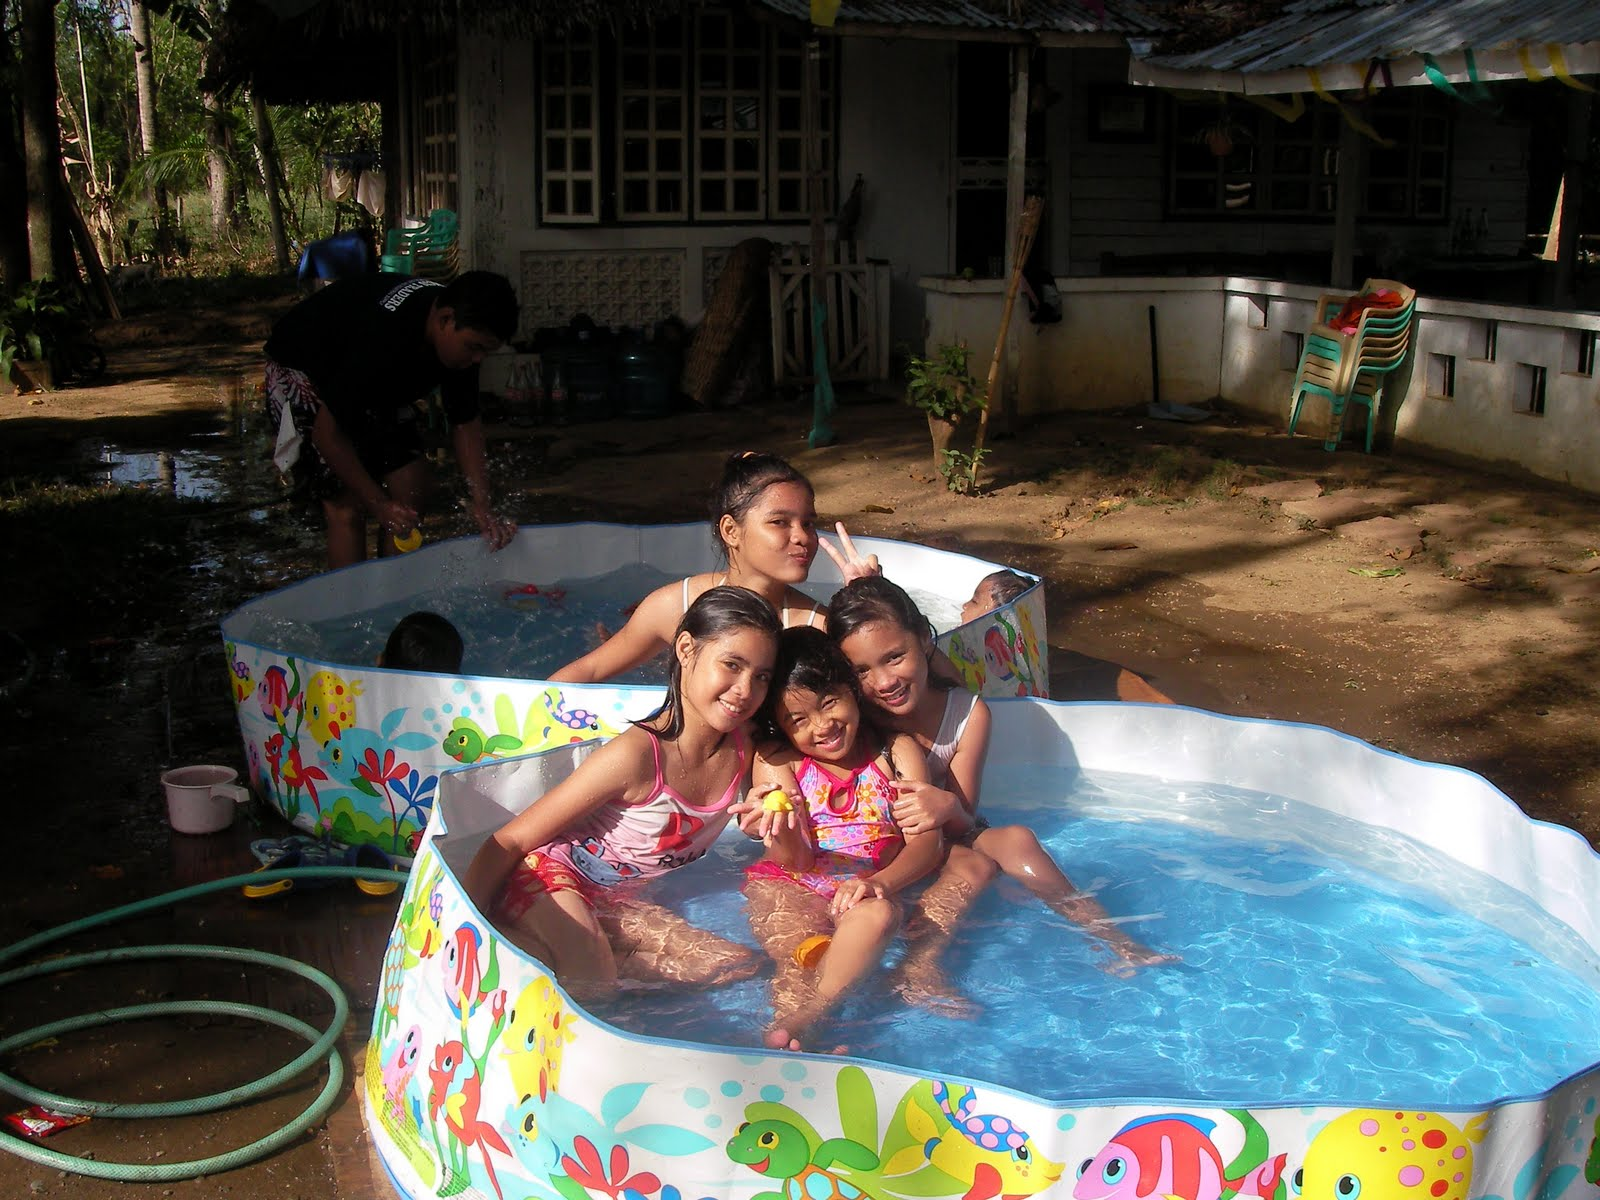 Enjoying the Kiddie Pool | Words From My Heart...kiddie